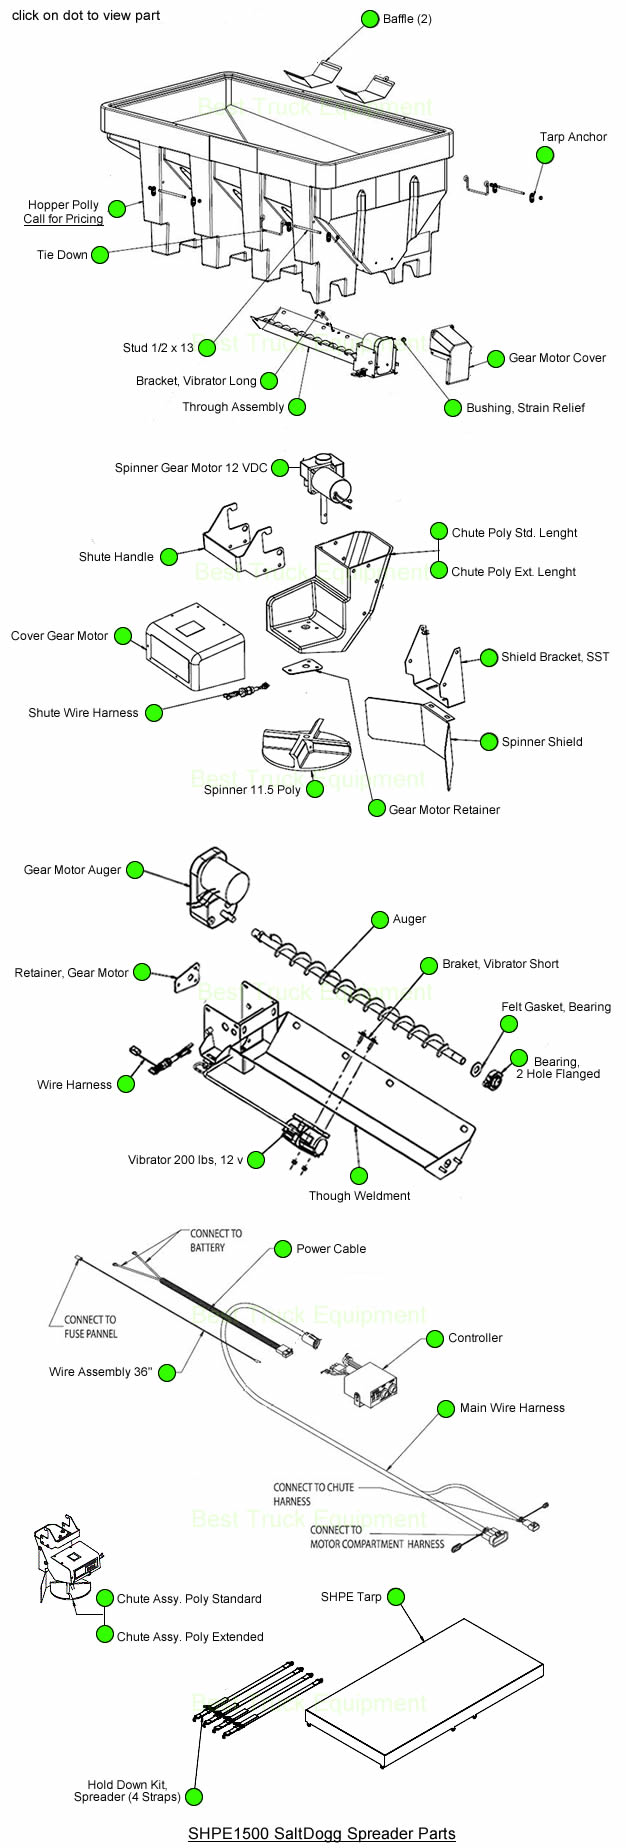 shpe2000 saltdogg shpe2000 buyers salt spreader parts by part look up diagram saltdogg salt spreader wire harness at bakdesigns.co